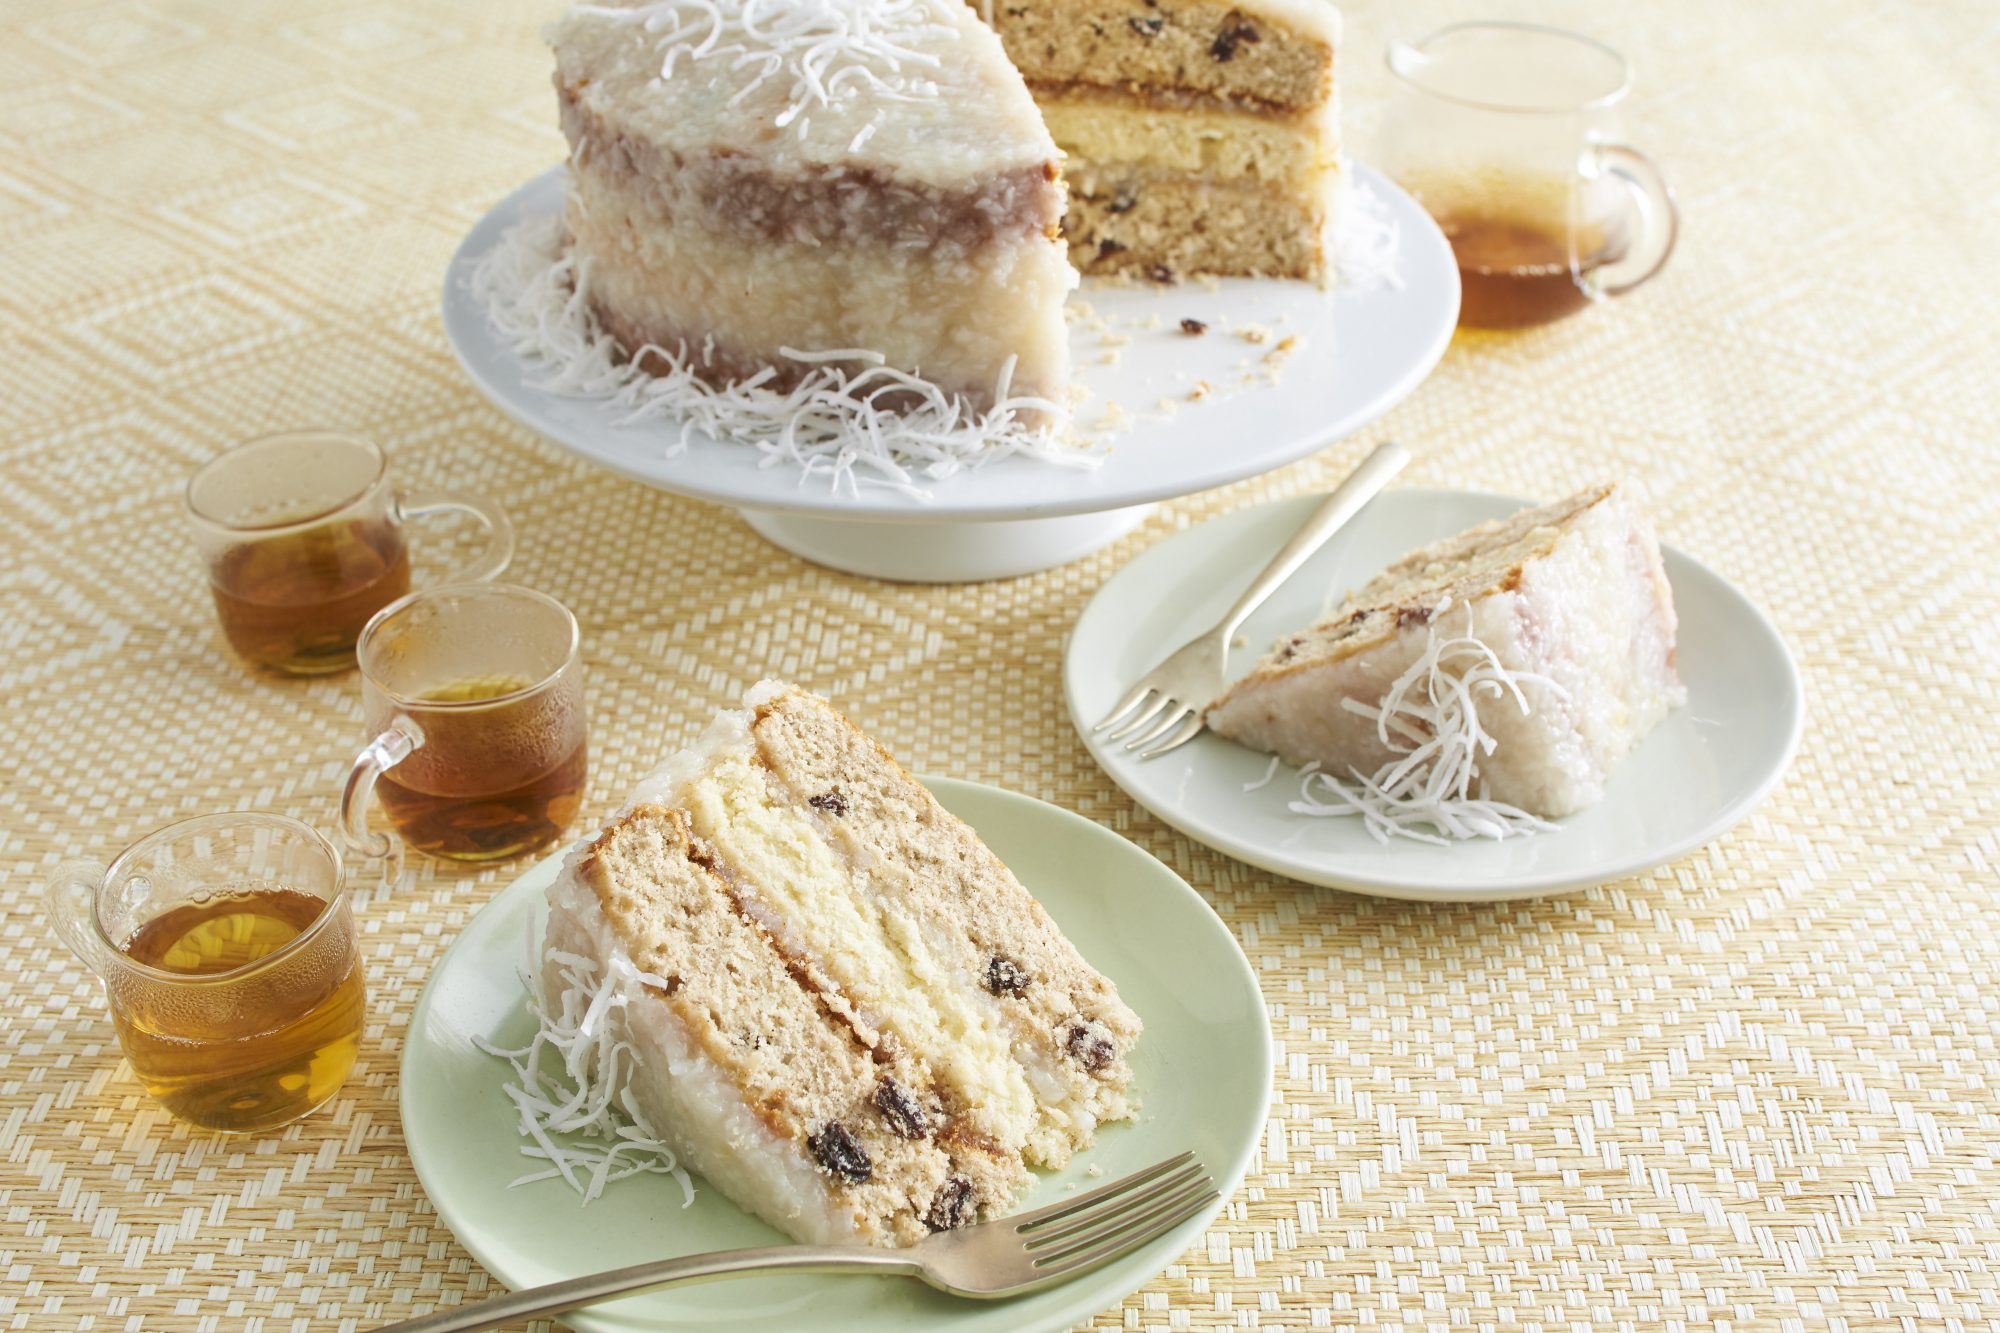 Japanese Fruitcake with Lemon-Coconut Frosting